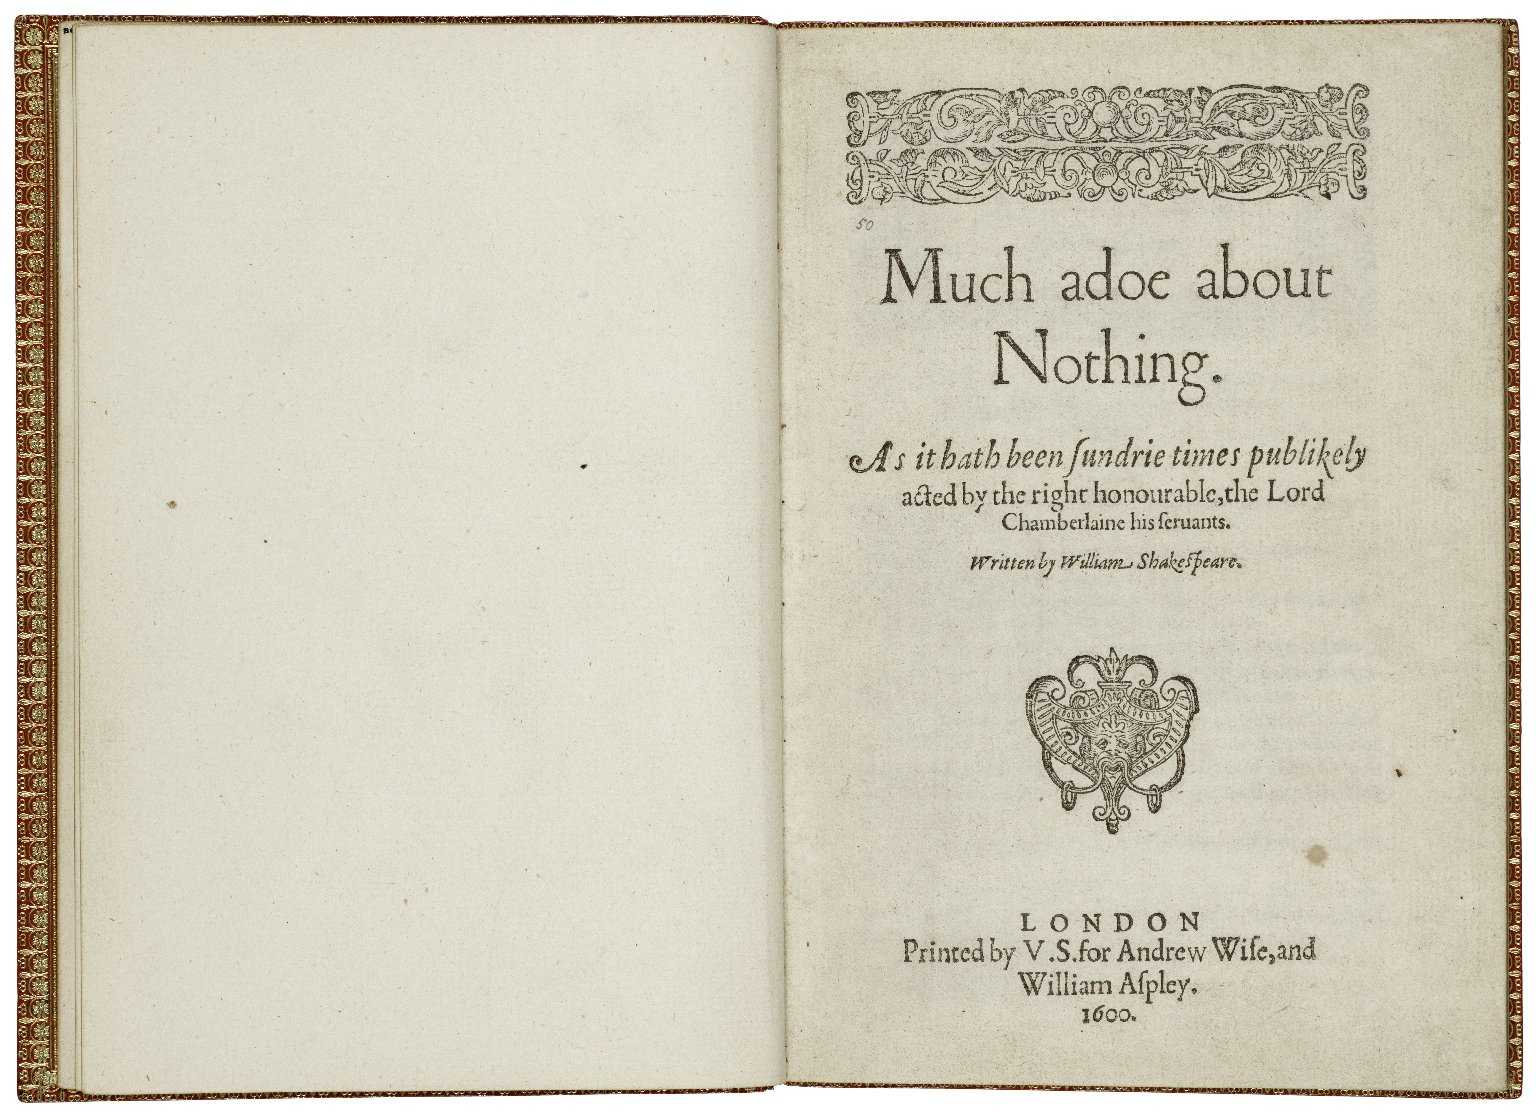 [Much ado about nothing] Much adoe about nothing. As it hath been sundrie times publikely acted by the right honourable, the Lord Chamberlaine his seruants.